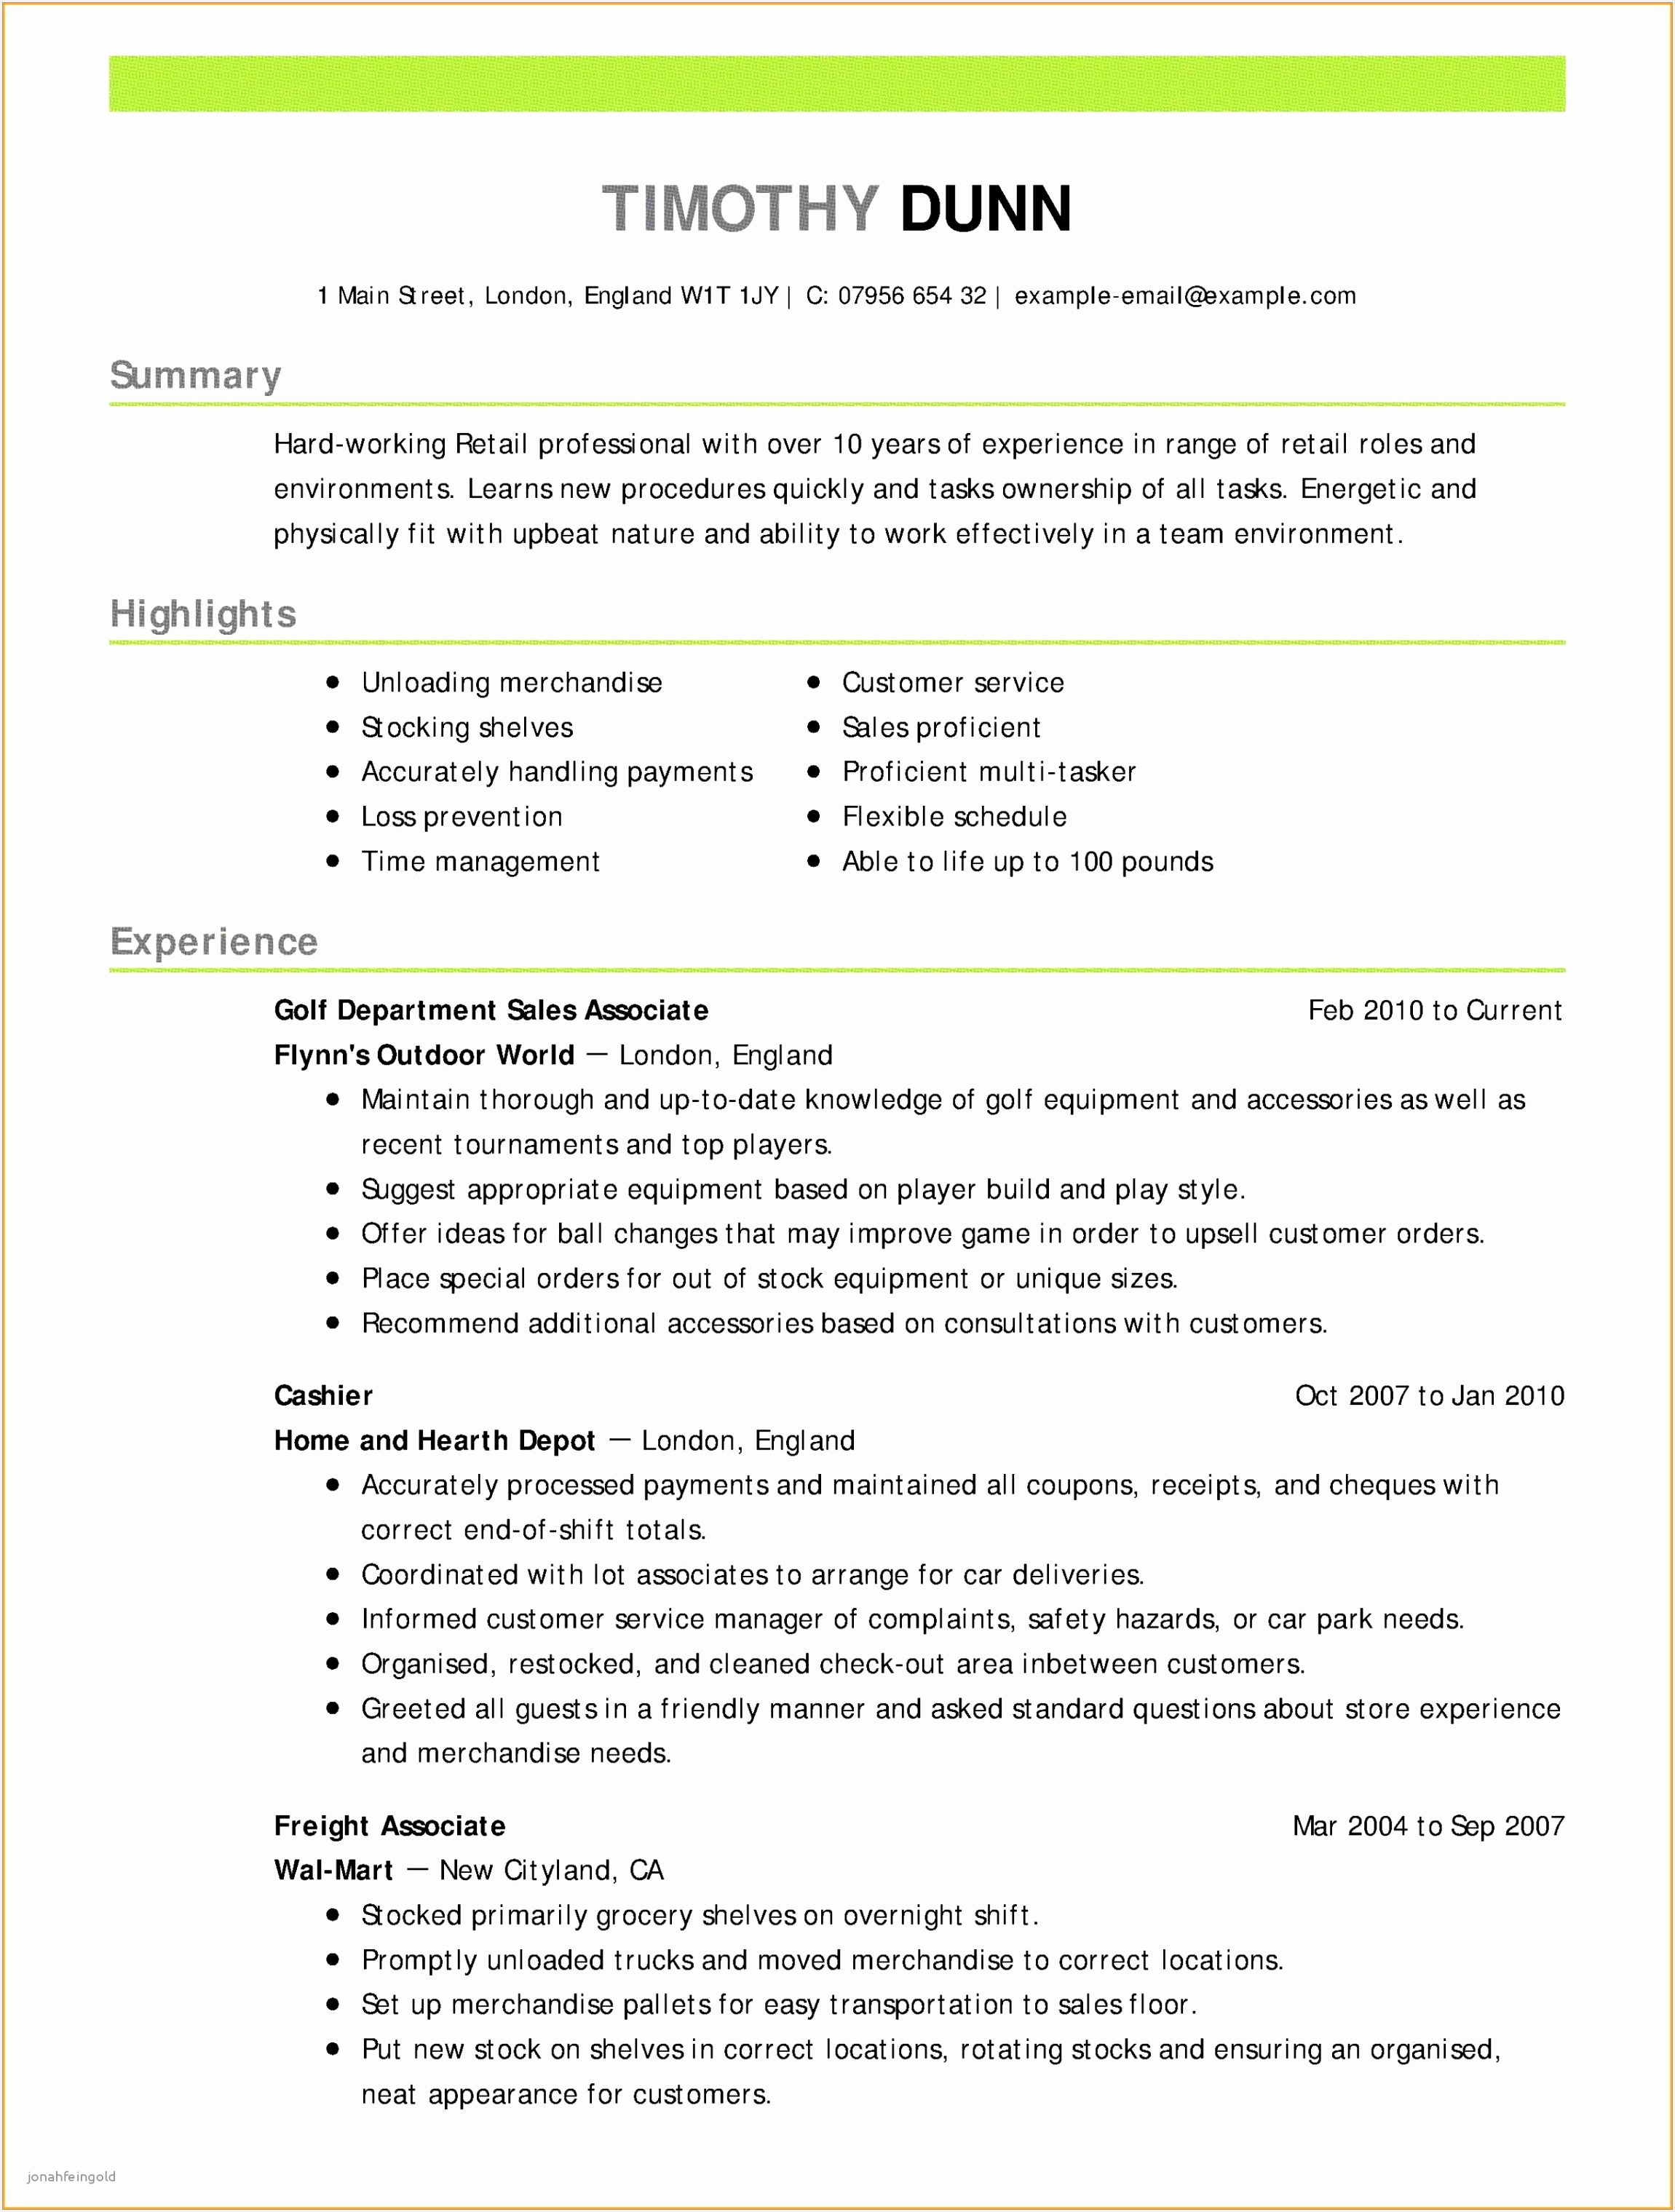 Examples Resumes for Jobs Favnh Fresh It Resume Job Descriptions Examples New It Resume Skills Unique Of Examples Resumes for Jobs Anrsu Luxury Examples A Resume Lovely Example Job Resume Fresh Luxury Examples